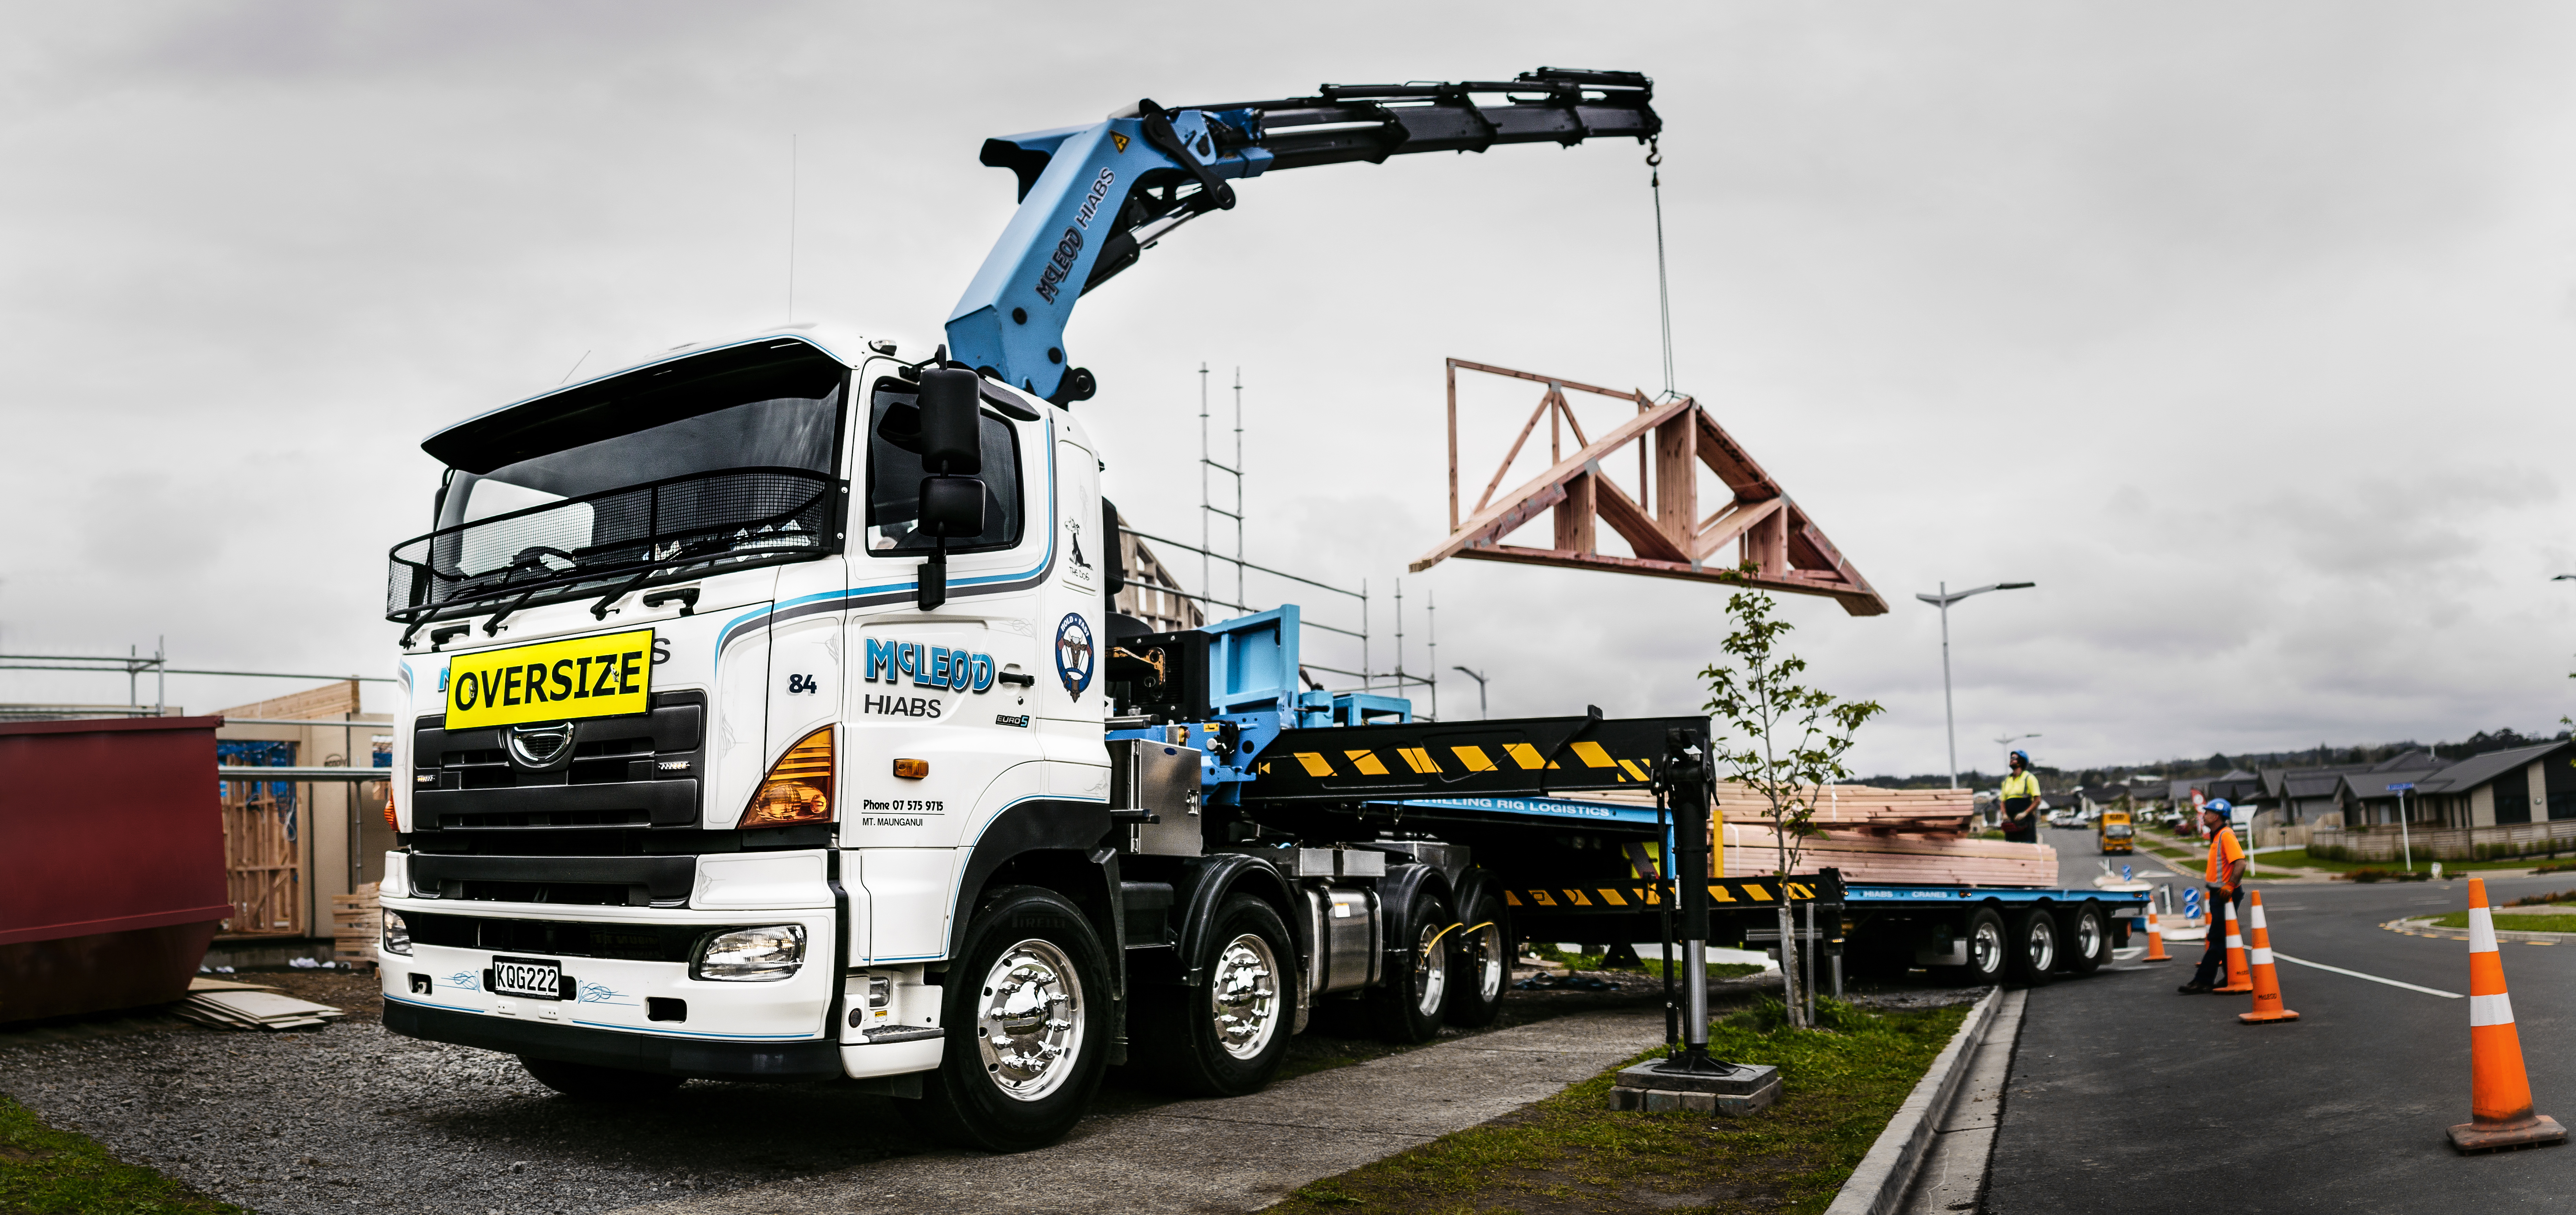 McLeod Cranes and Hiabs - 700 Series FY with Central Tyre Inflation - Palfinger